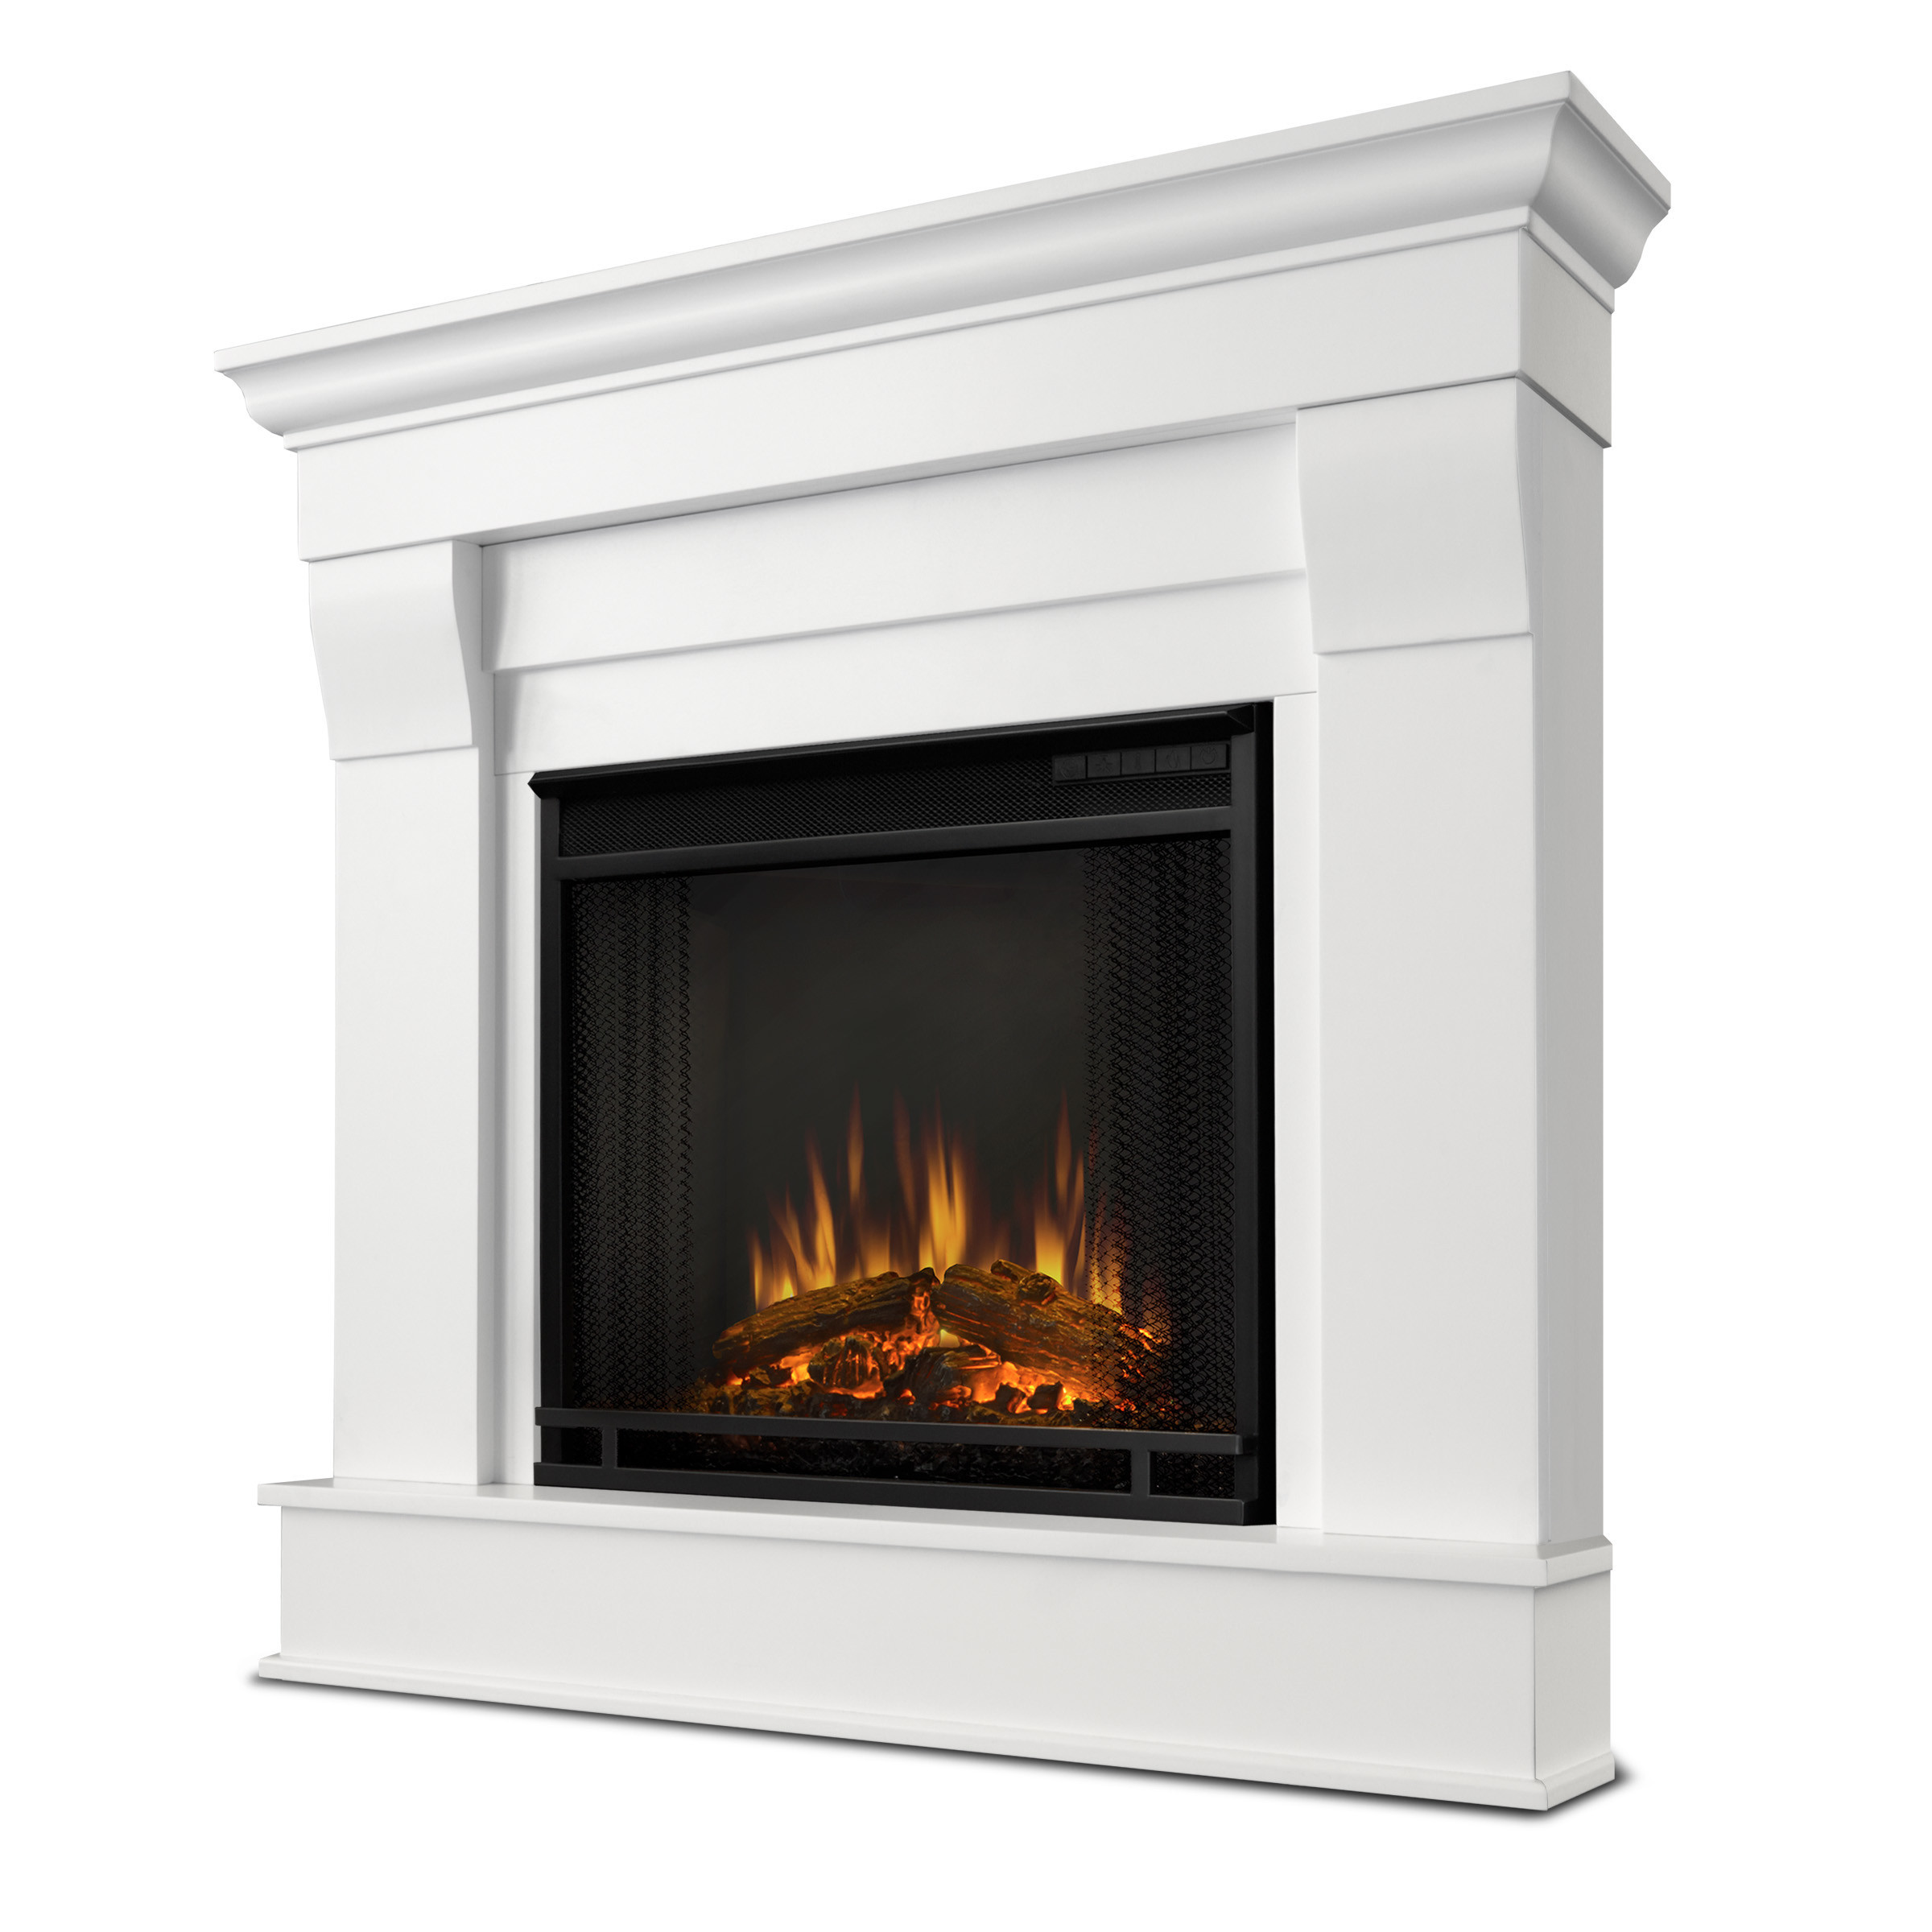 Best ideas about Real Flame Electric Fireplace . Save or Pin Real Flame Chateau Corner Electric Fireplace & Reviews Now.